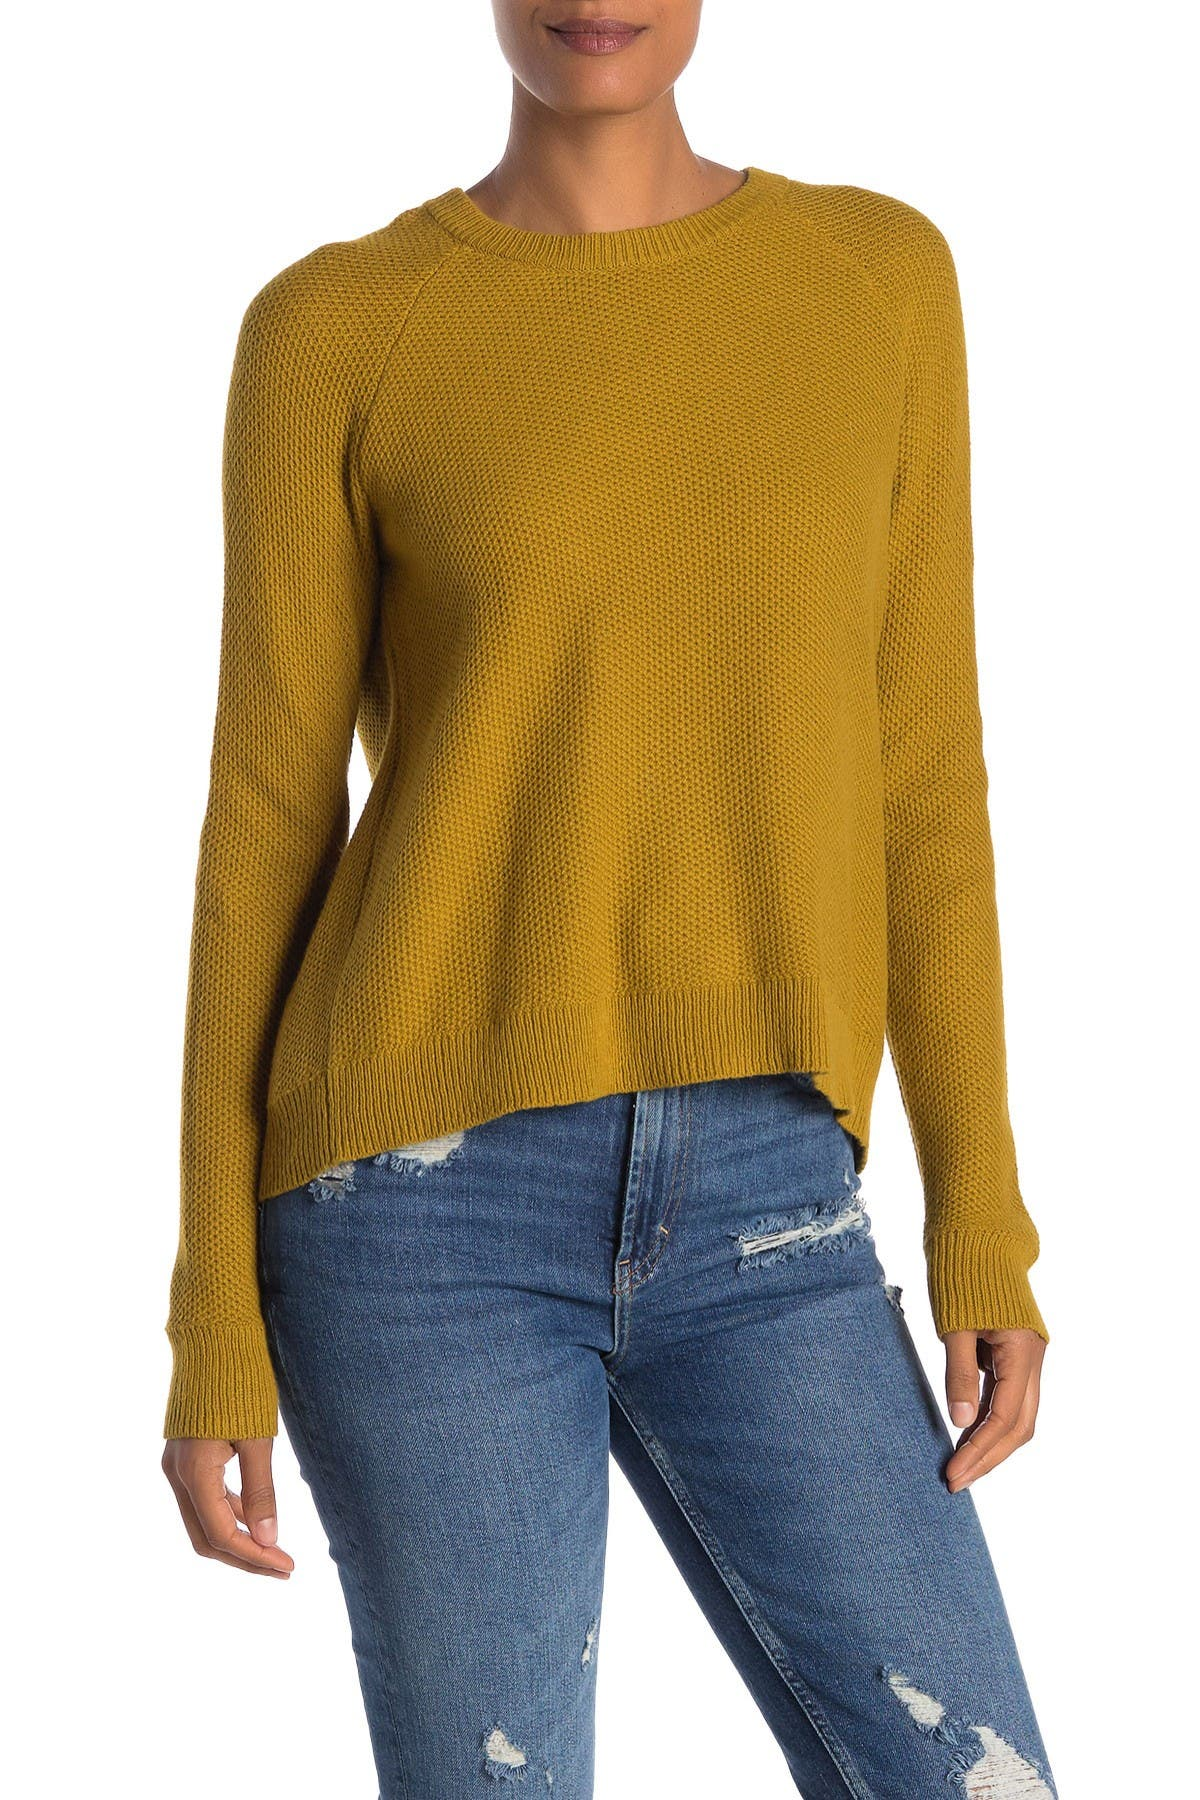 Image of Madewell Province Cross Back Knit Pullover